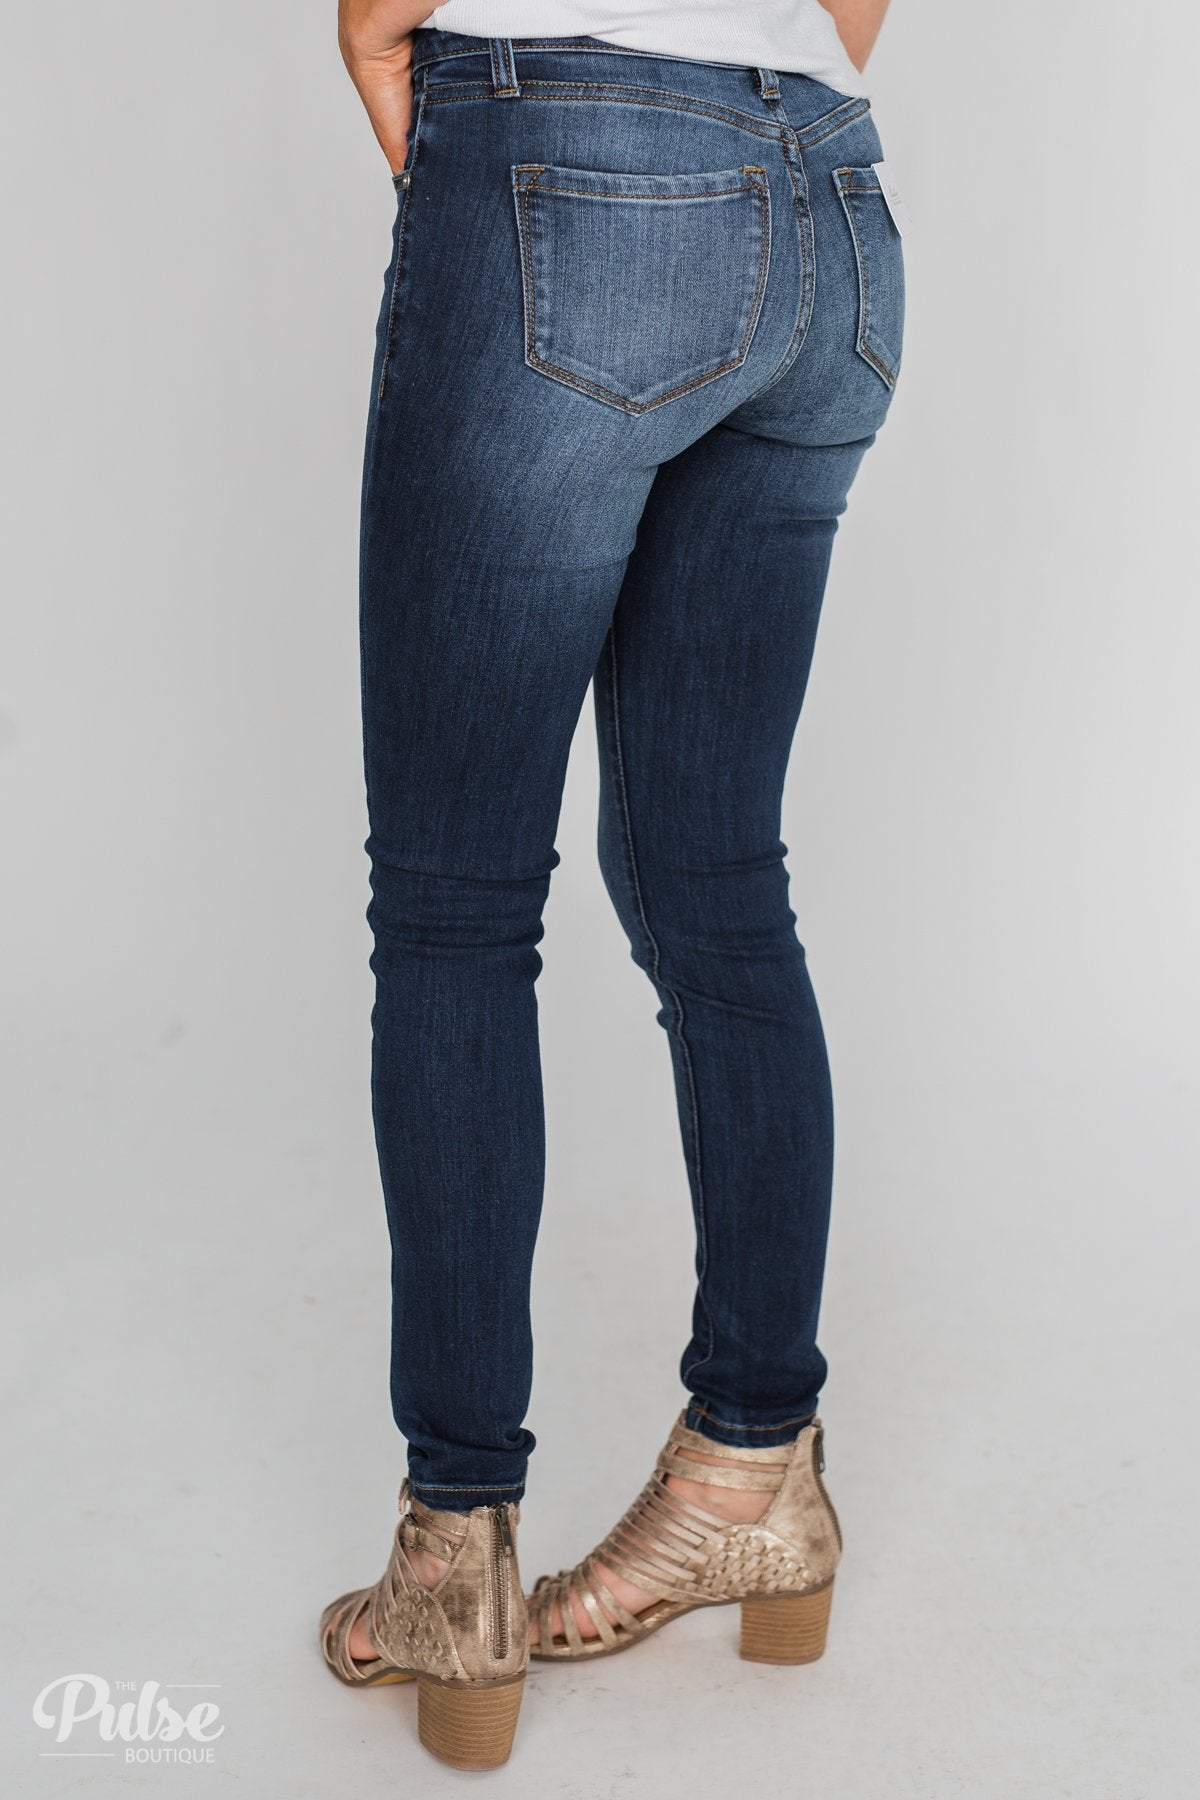 KanCan Jeans- Molly Wash